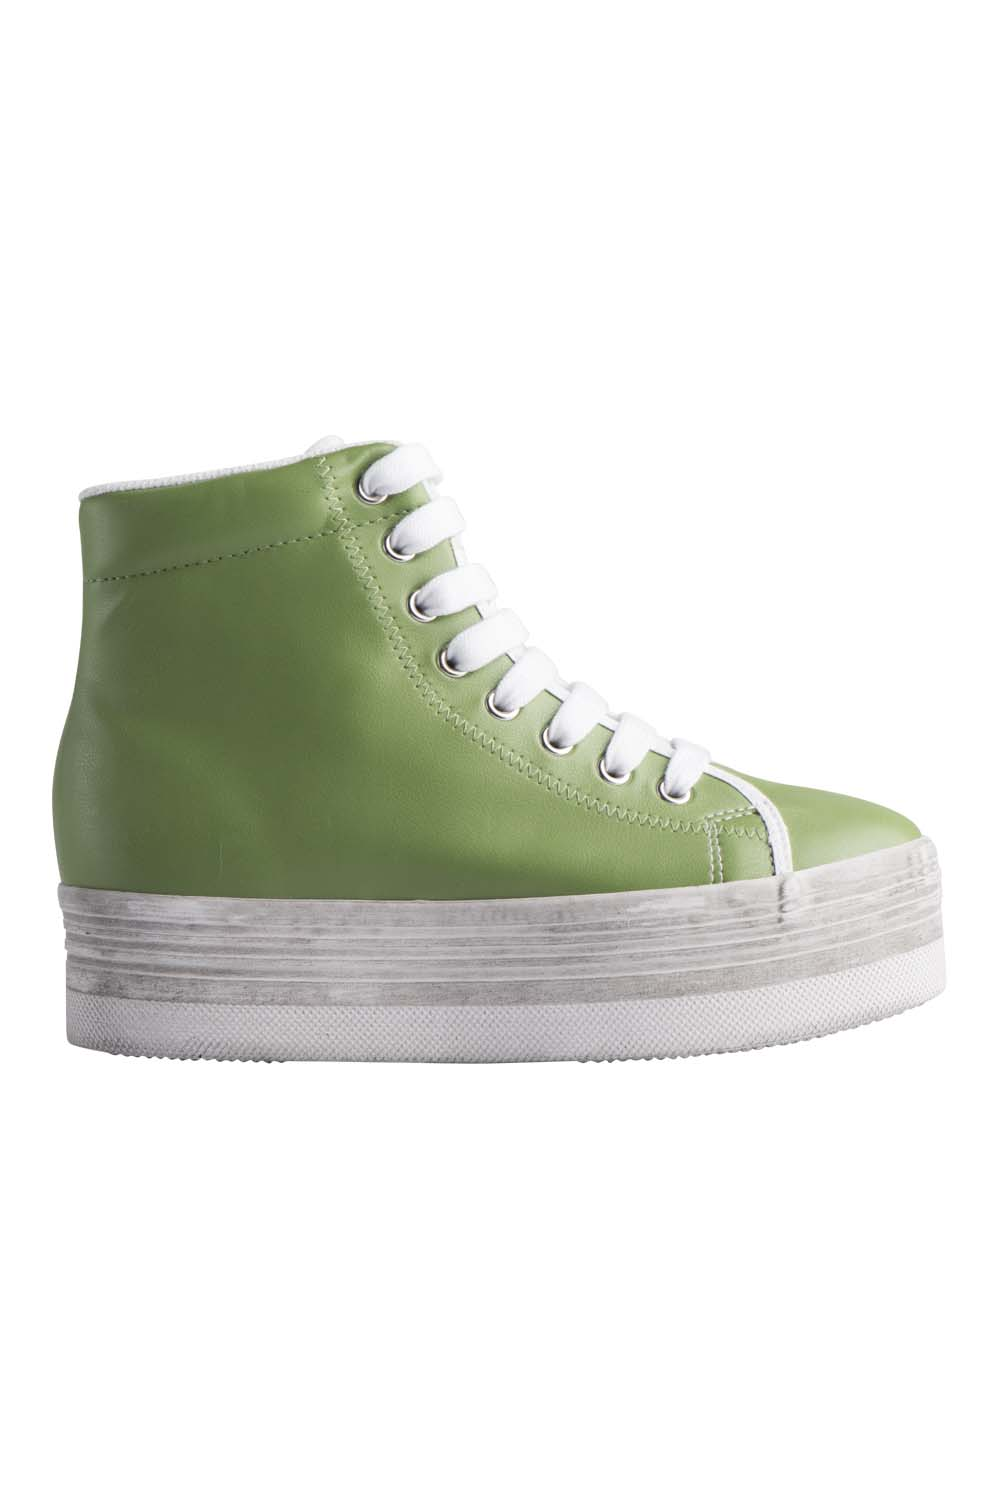 JEFFREY CAMPBELL SNEAKERS - HOMG GR GREEN LEATHER.jpg